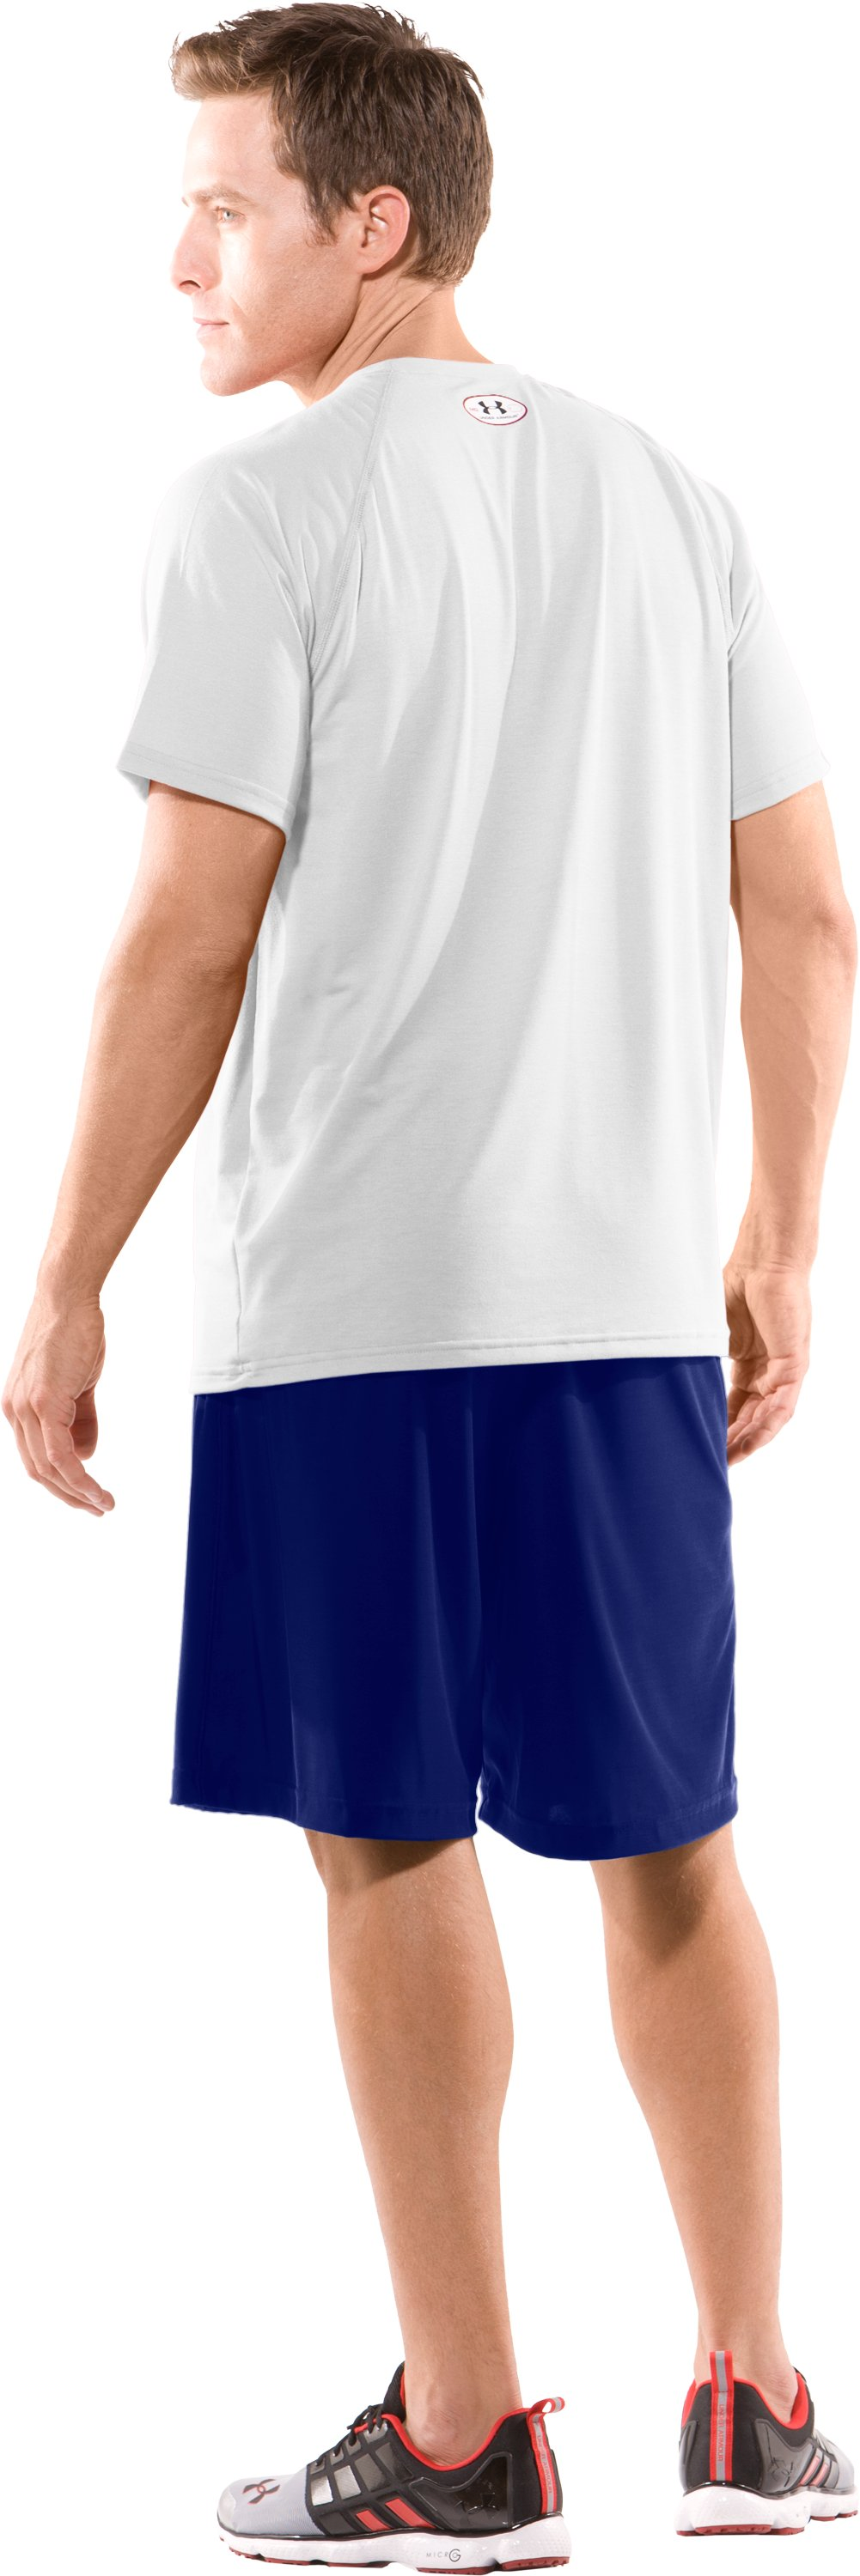 Men's Team Micro Short II, Royal, Back